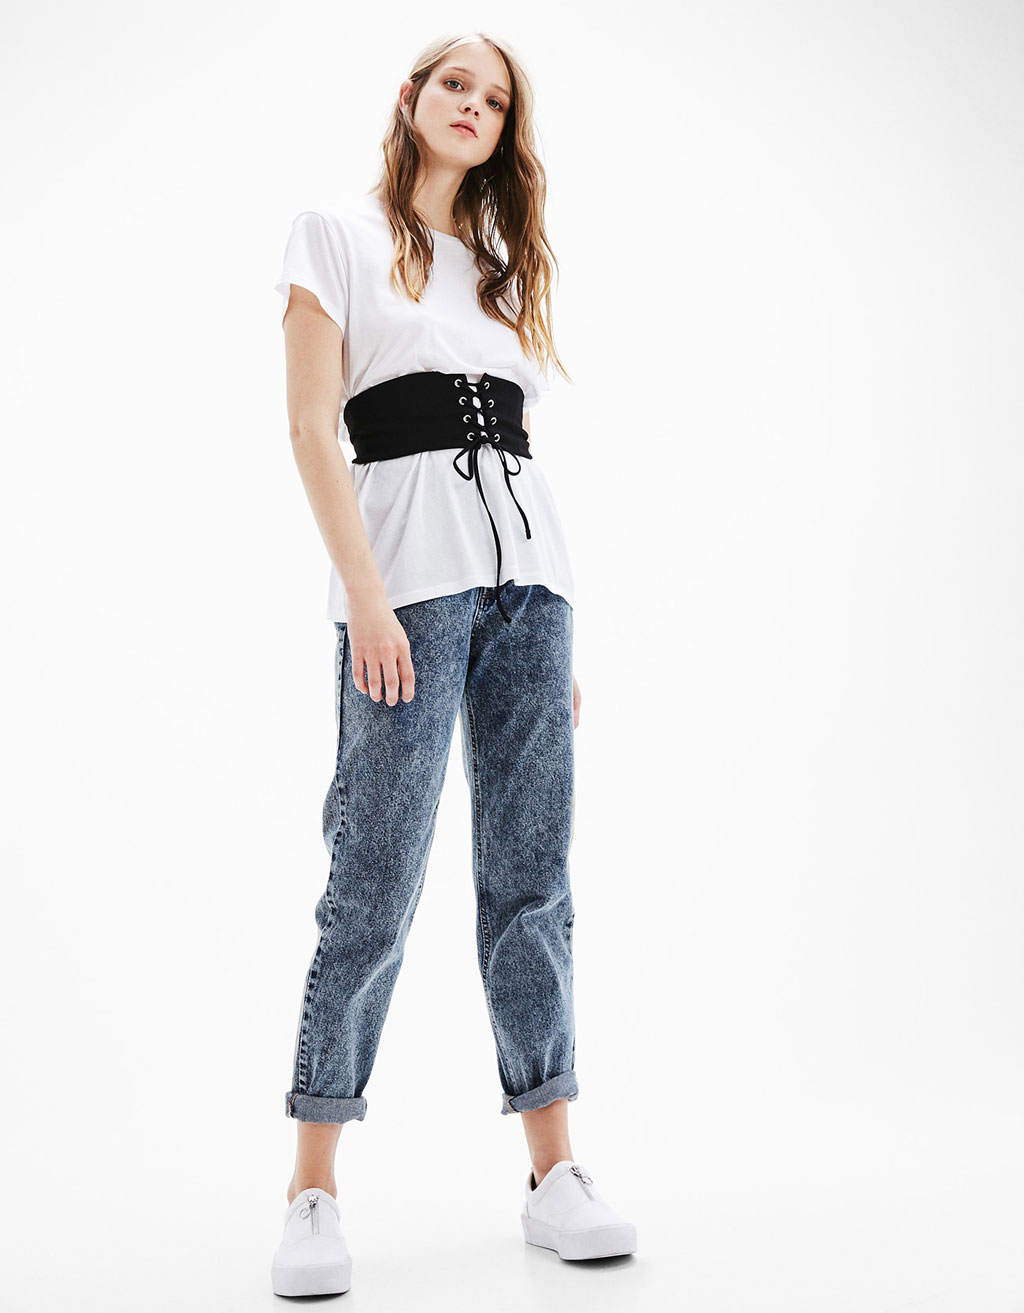 'Mom fit' jeans  hight waist